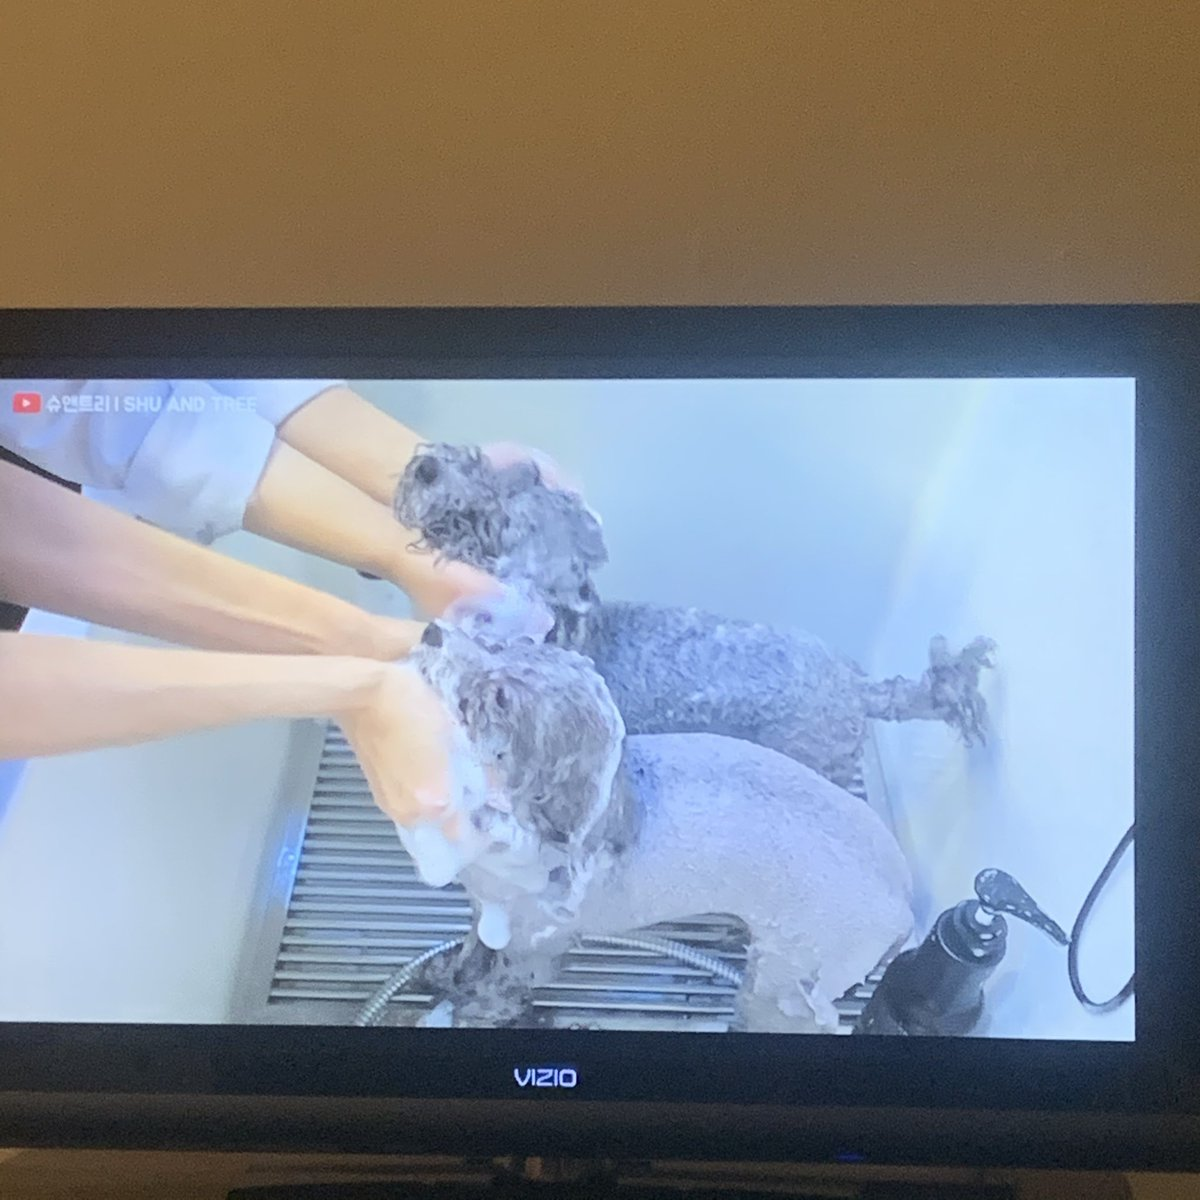 That's why I'm watching twin pups getting groomed pic.twitter.com/aLc1sYyMmG